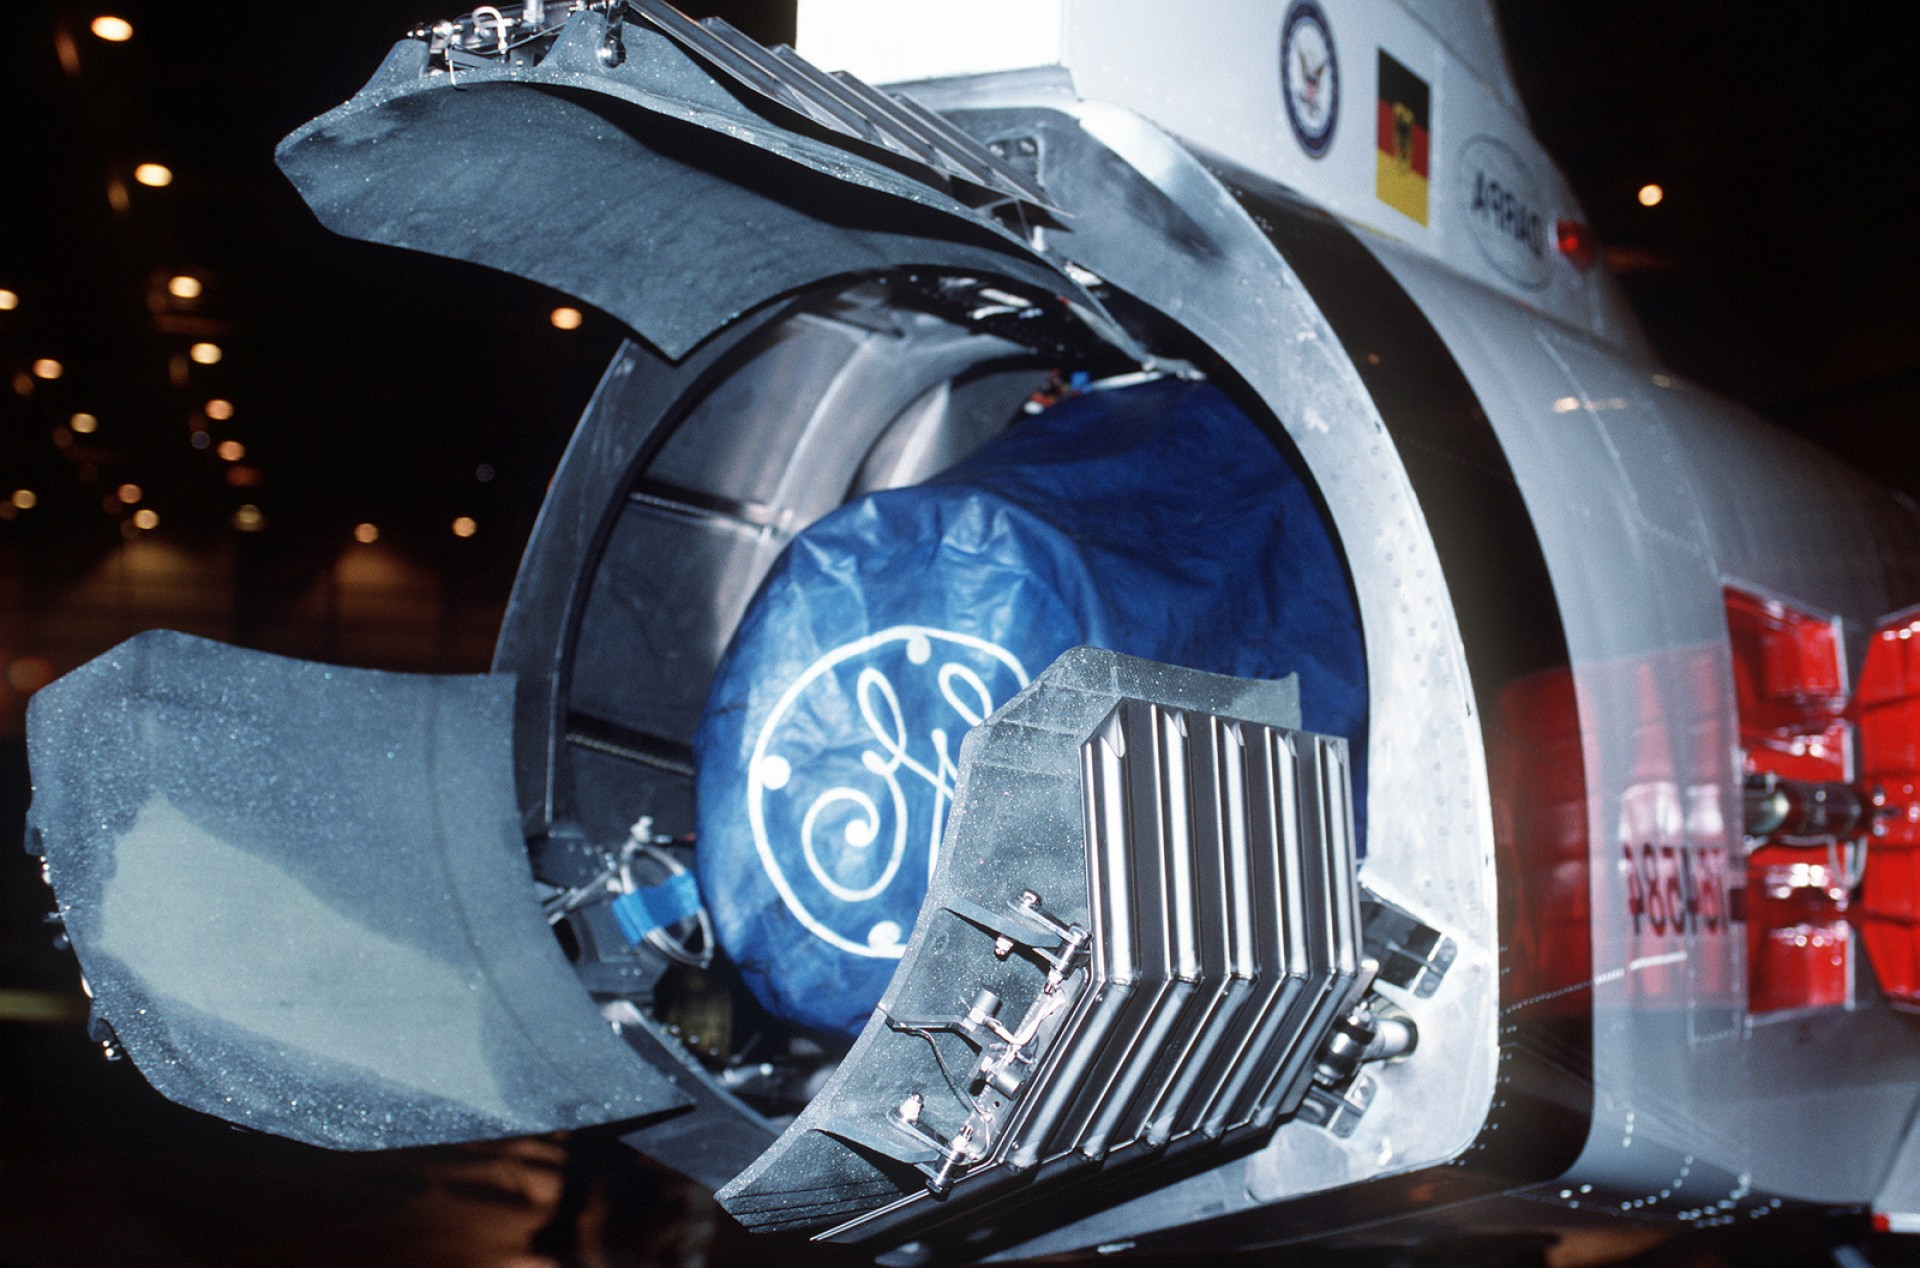 Thrust Vector Control: A Close Up View Of The Thrust Vector Control Systems Of The X Enhanced Fighter Affed